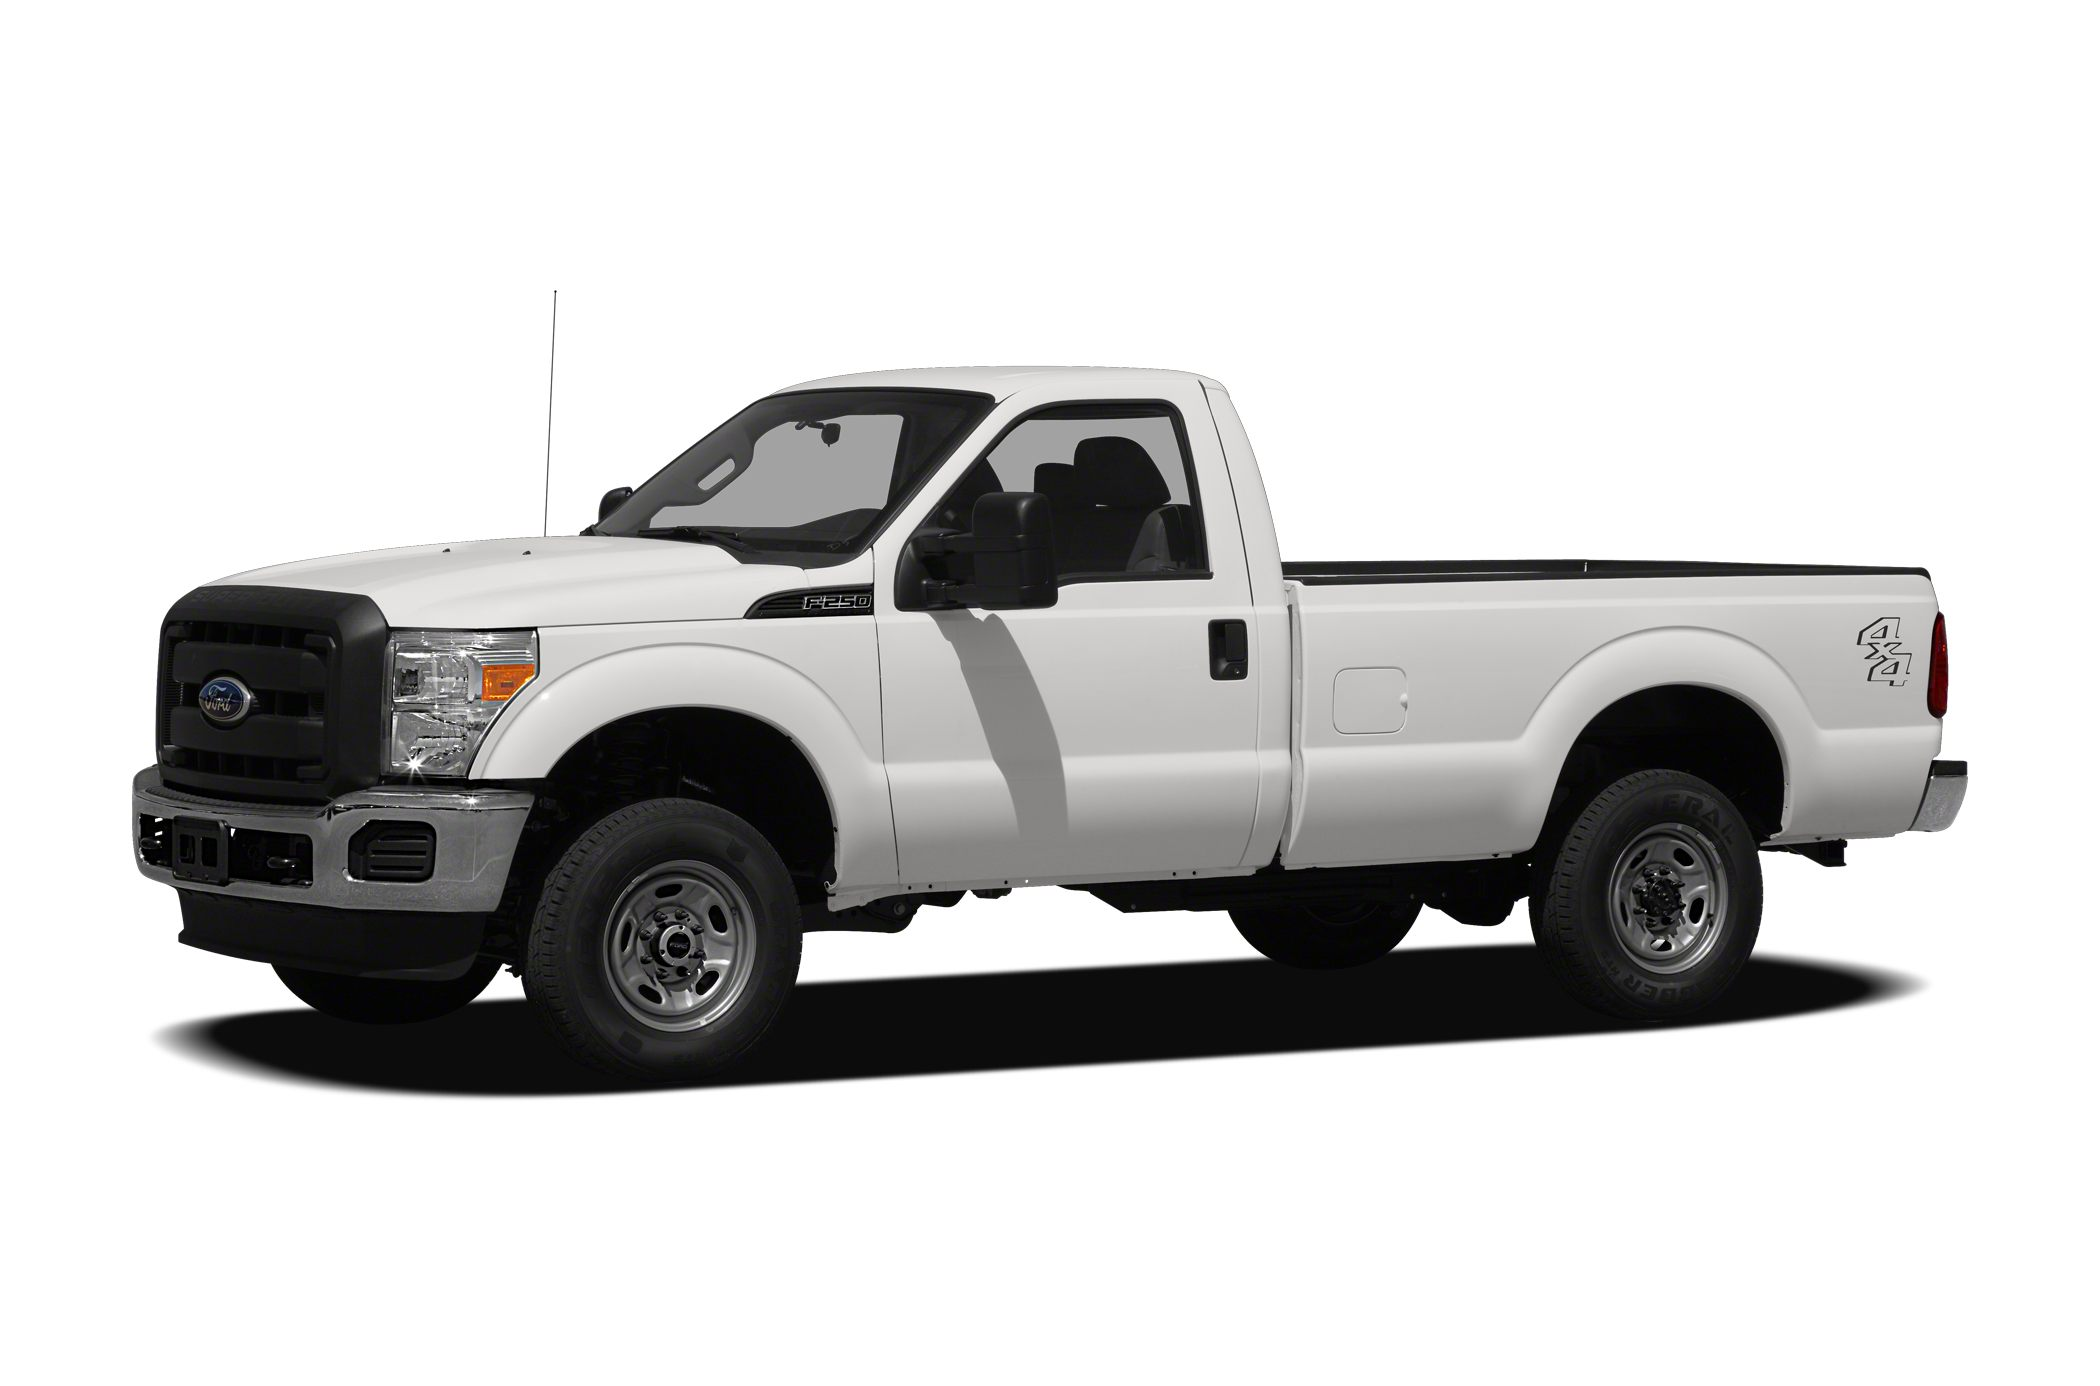 2012 Ford F250 XL Crew Cab Pickup for sale in Mcalester for $38,930 with 43,101 miles.